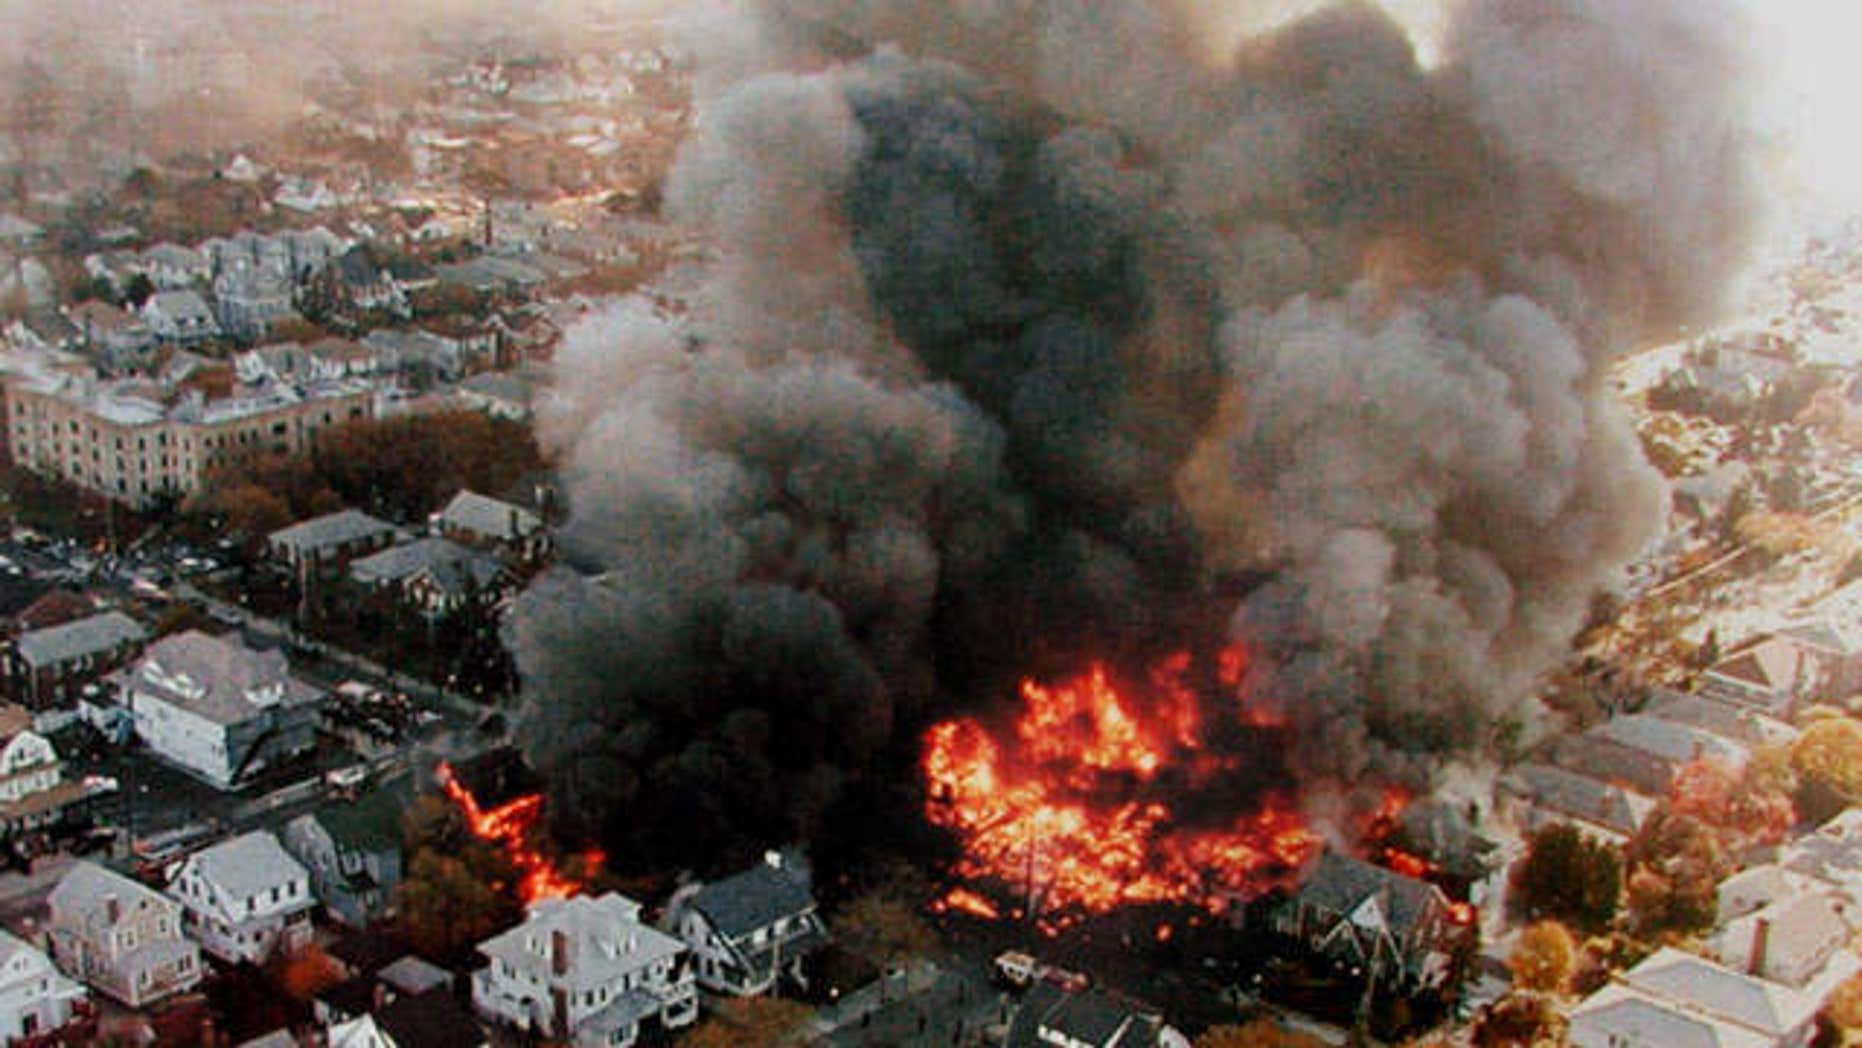 Nov. 12, 2001: Fires burning in New York's Belle Harbor neighborhood, from the crash of American Airlines Flight 587 which killed 265 people.